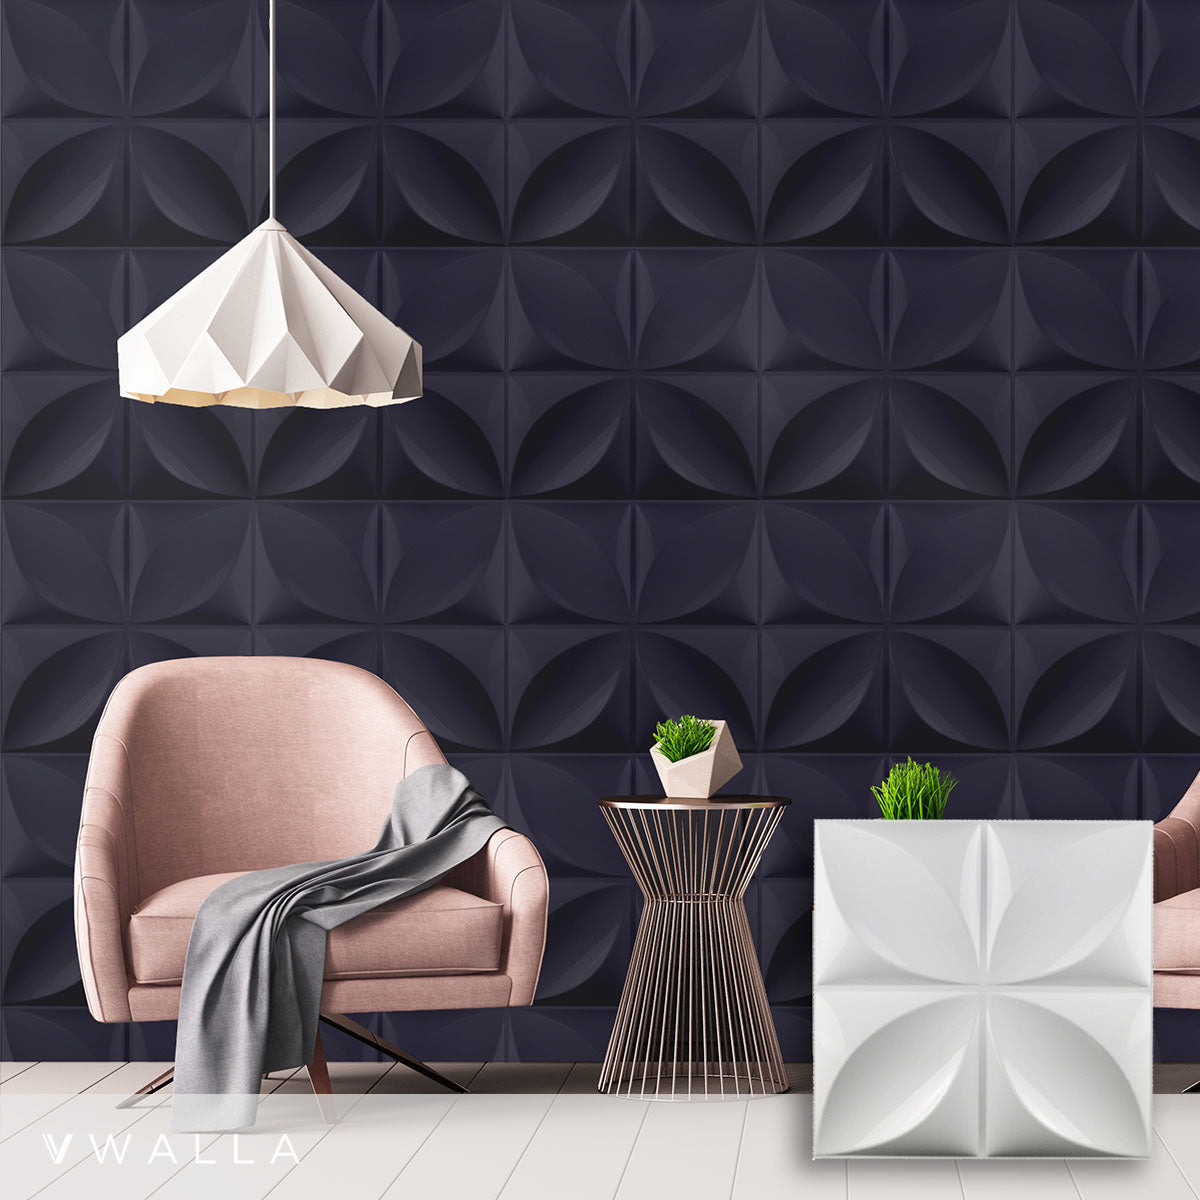 3D Wall Panel - Bloom